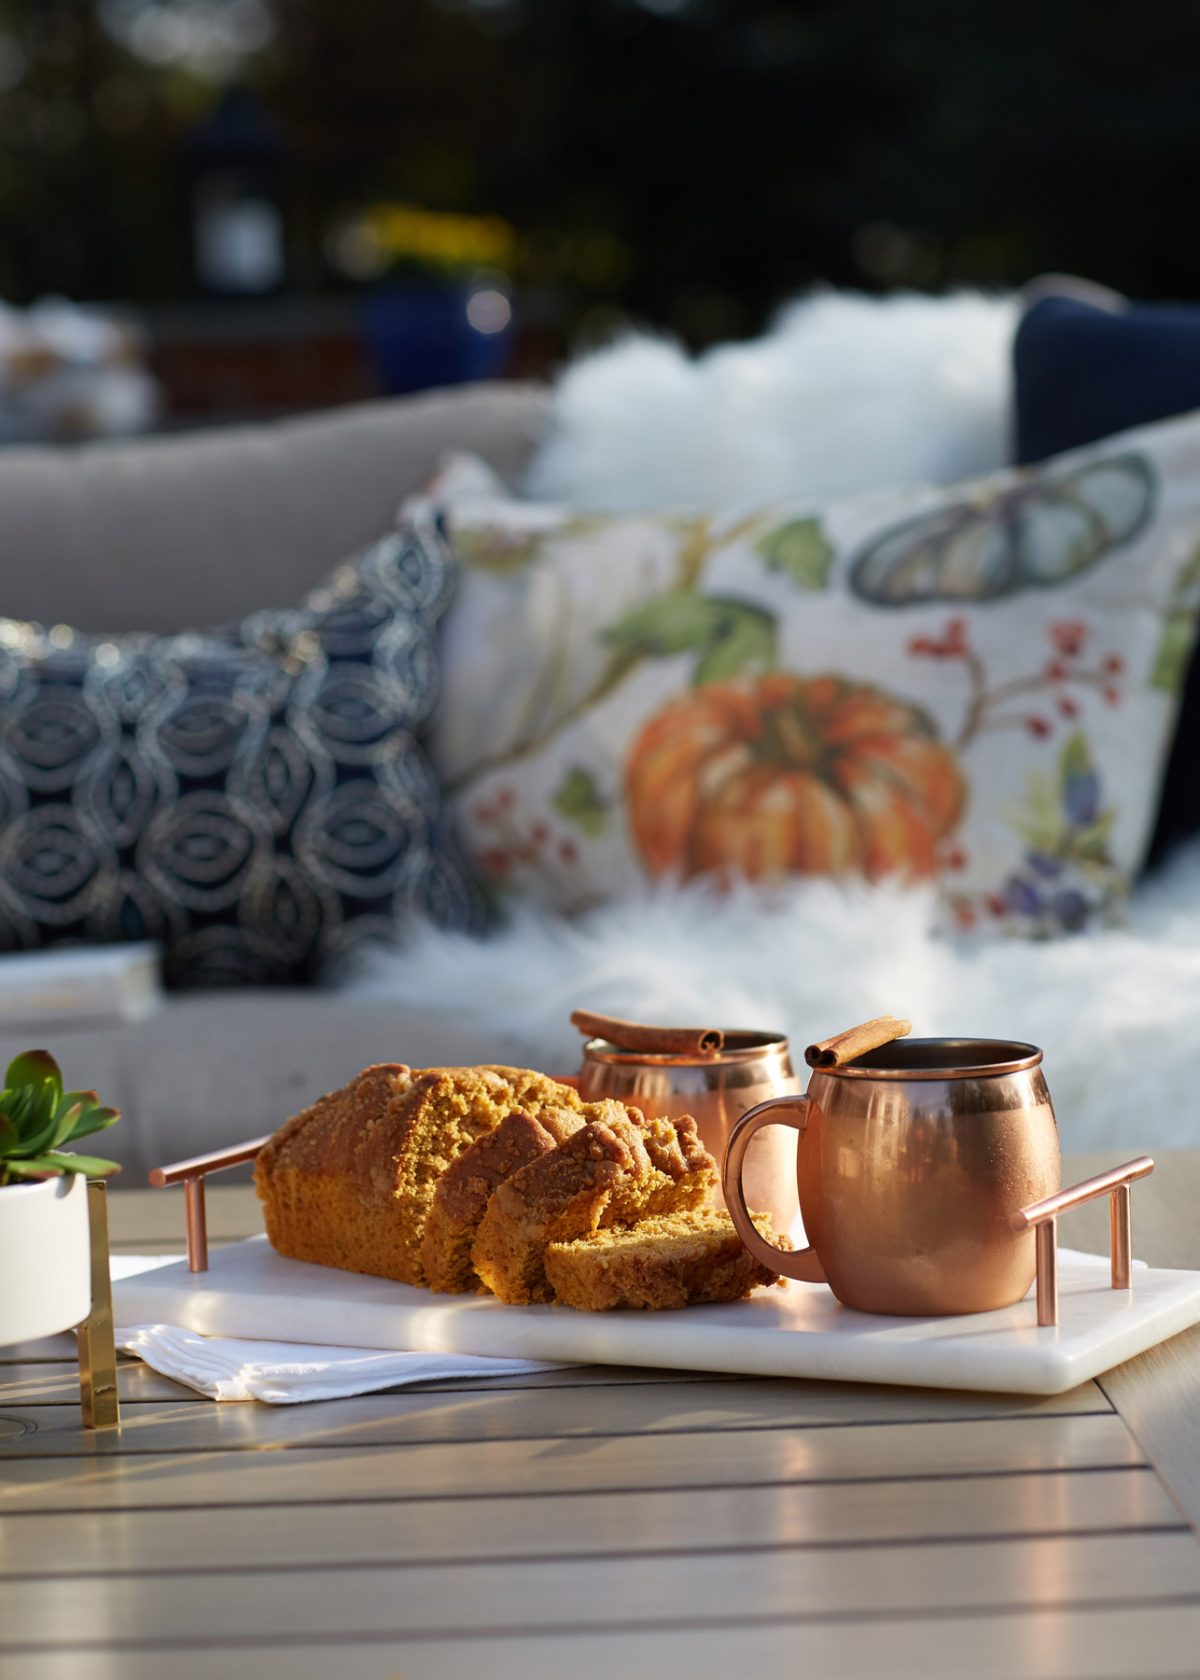 Editorial lifestyle photo with a tray of pumpkin bread and beverages in copper mugs on an outside table